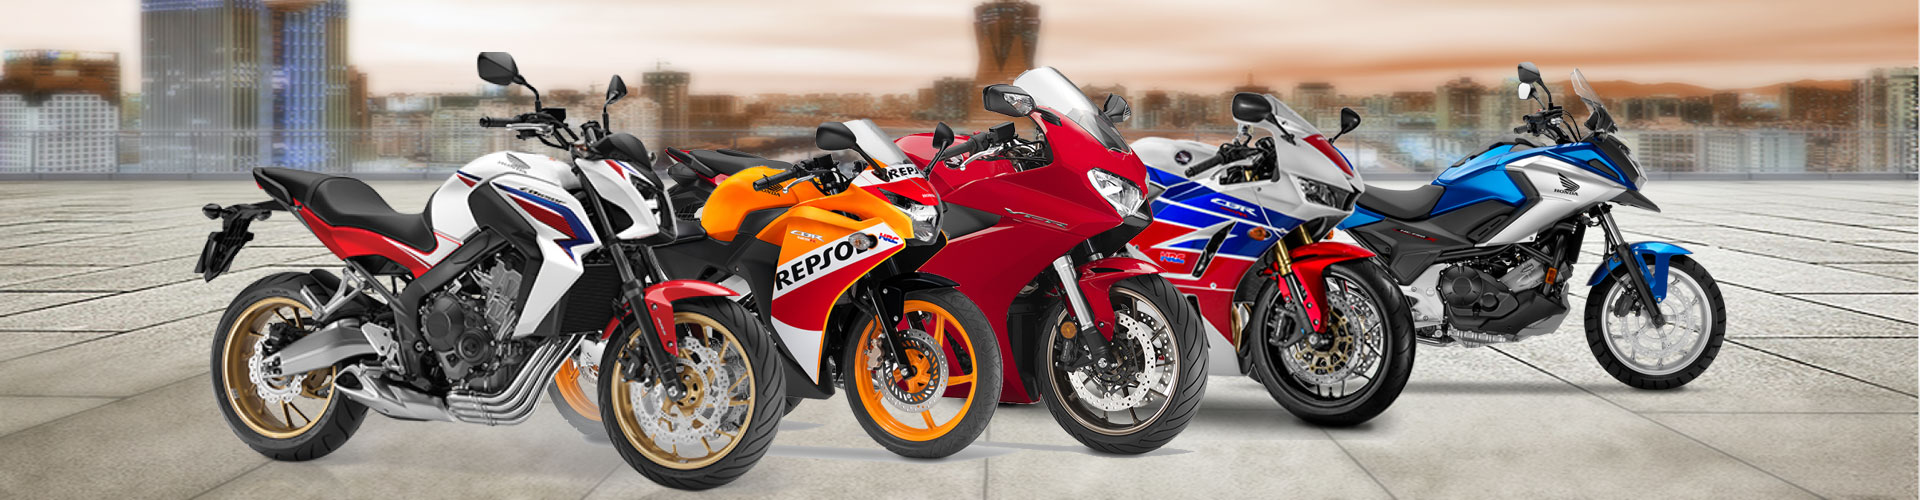 Used Motorcycles For Sale North West Honda